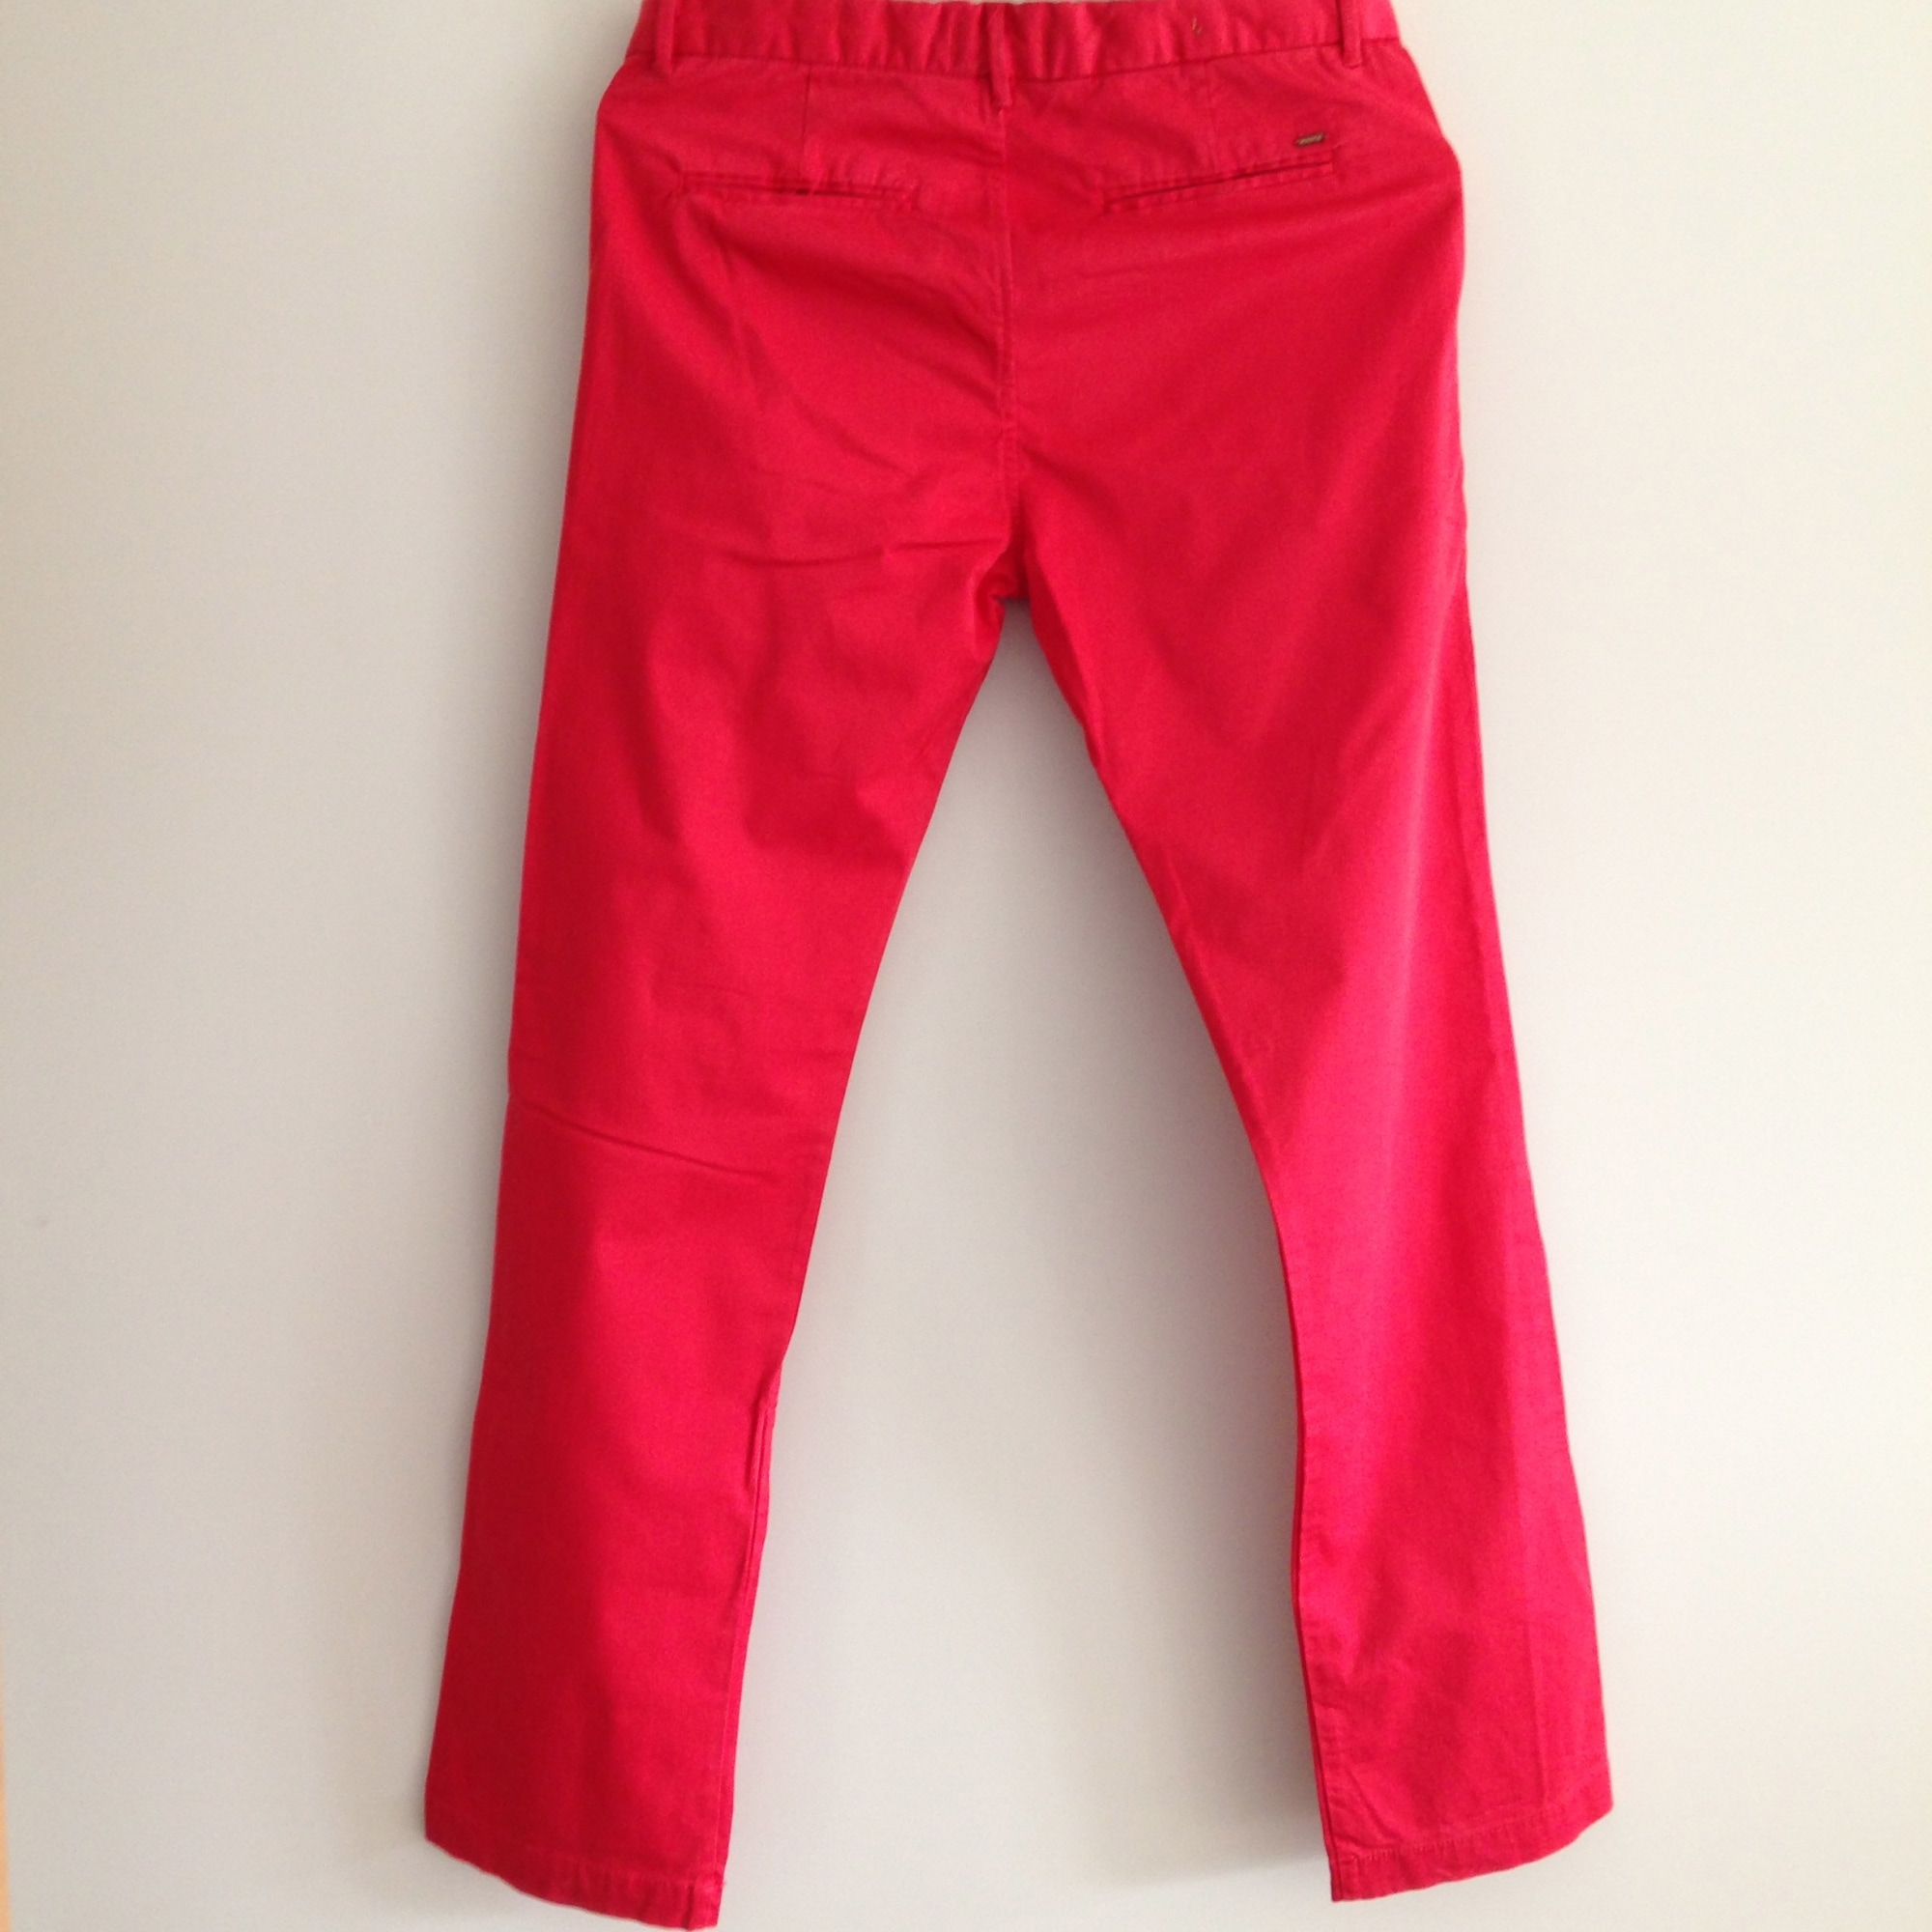 Pantalon SCOTCH SHRUNK Rouge, bordeaux